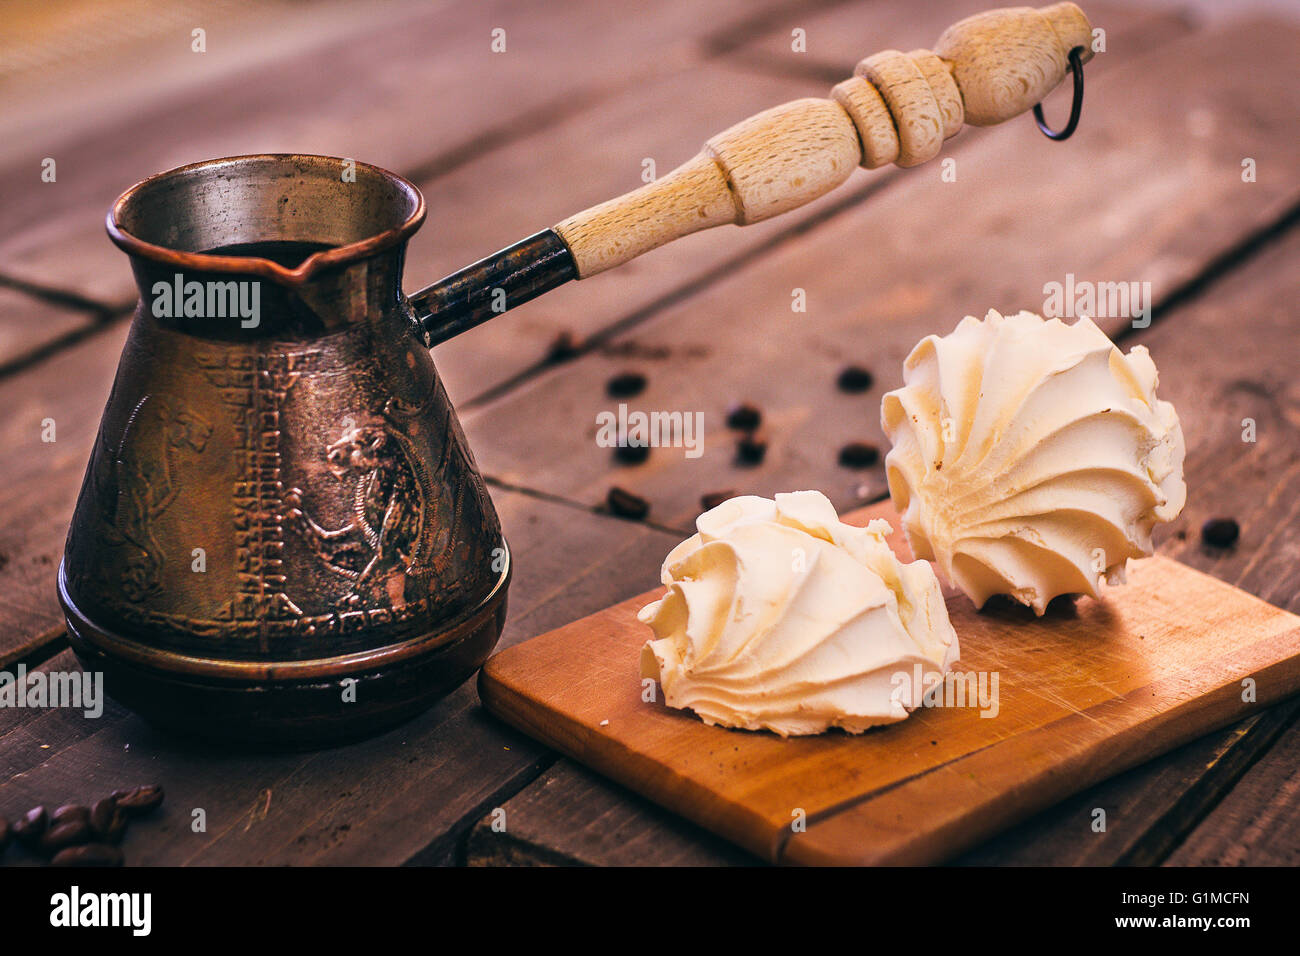 The Turk with coffee and white marshmallows on the wooden table - Stock Image